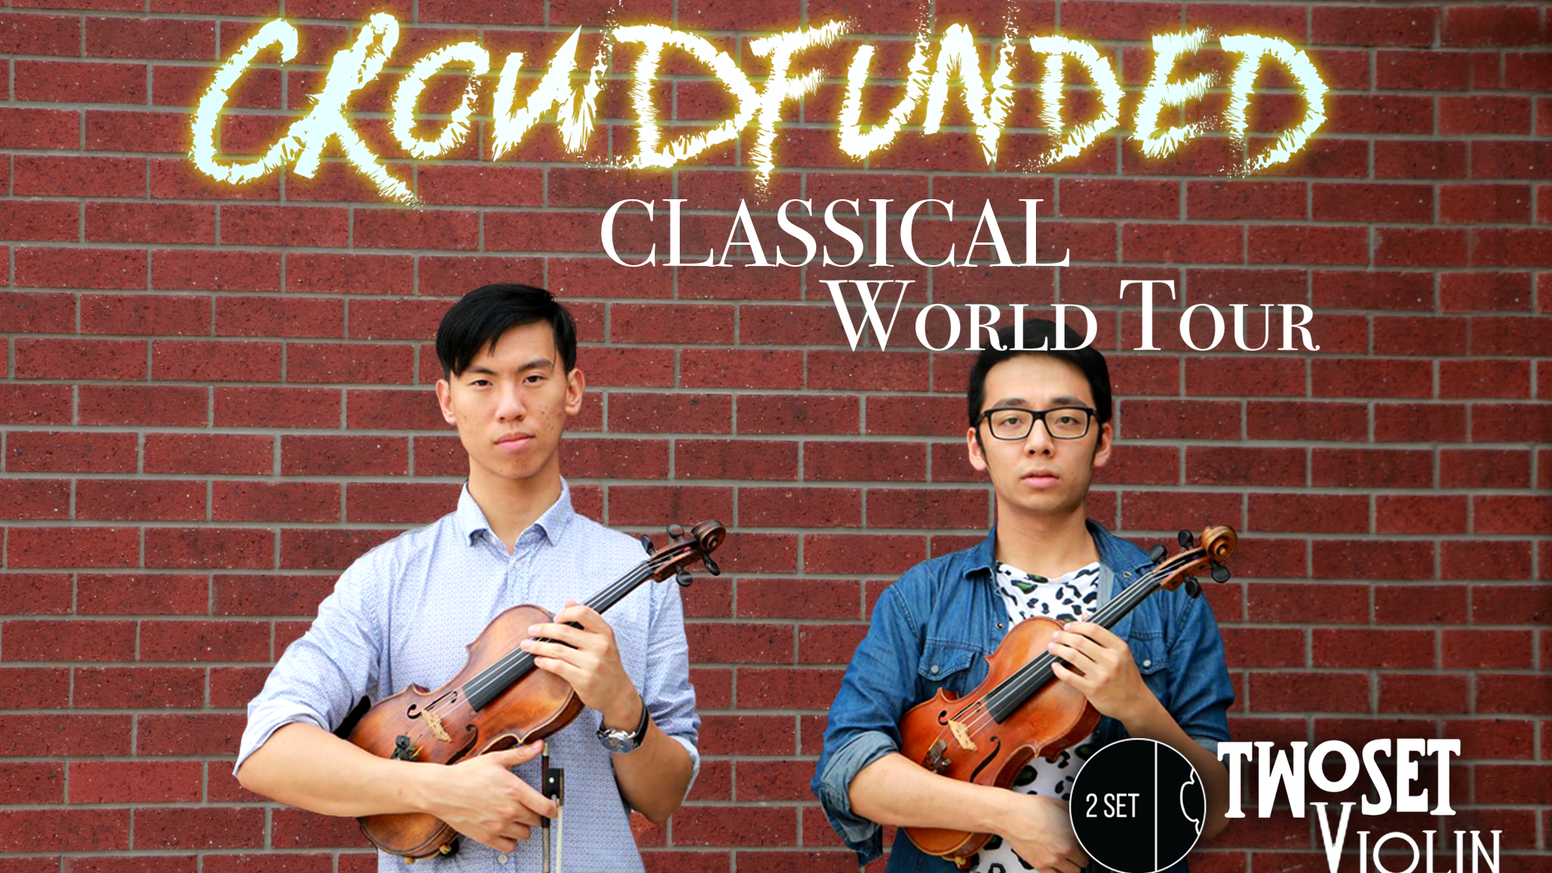 TwoSet Violin on a mission to re-invent art and culture. WORLD TOUR IS HAPPENING NOW! www.twosetviolin.com/show^^ GET YOUR TICKETS NOW! You can also pledge or donate to our Paypal: hi@twosetviolin.com